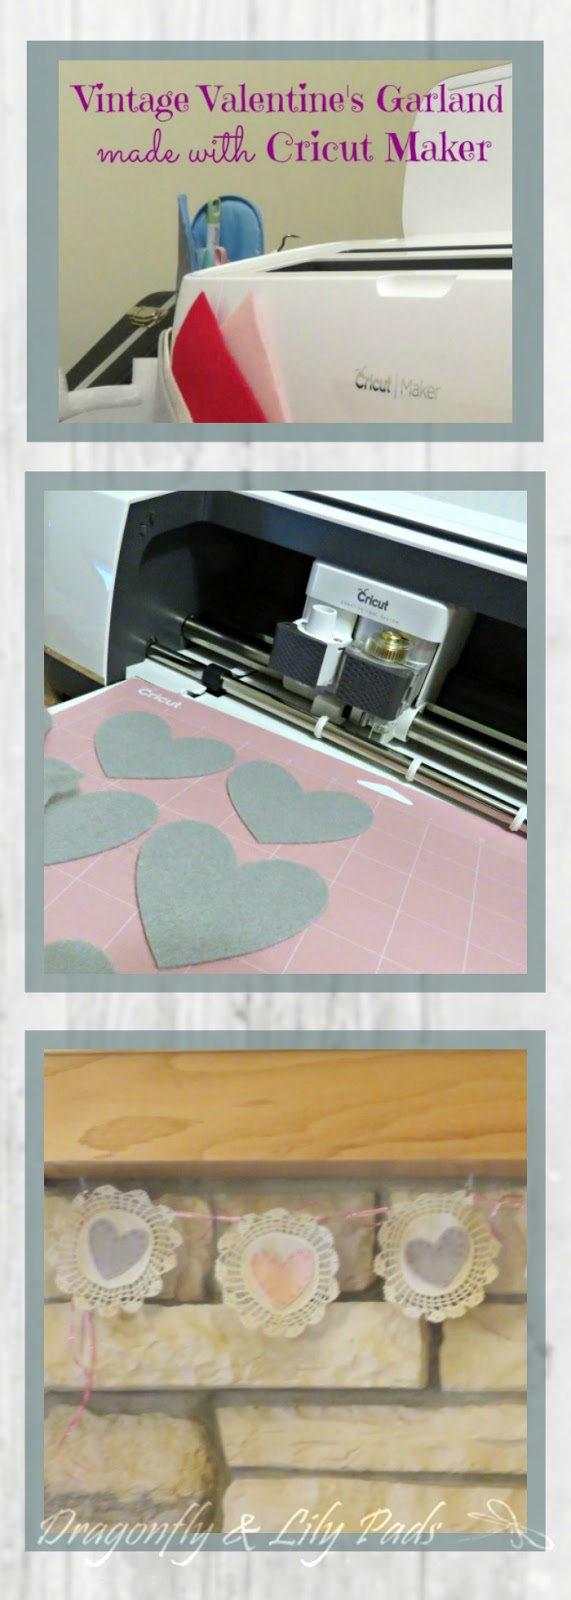 Vintage Heart Valentine's Garland Pinterest image of Cricut Maker, Gray hearts on cutting mat, Completed Garland